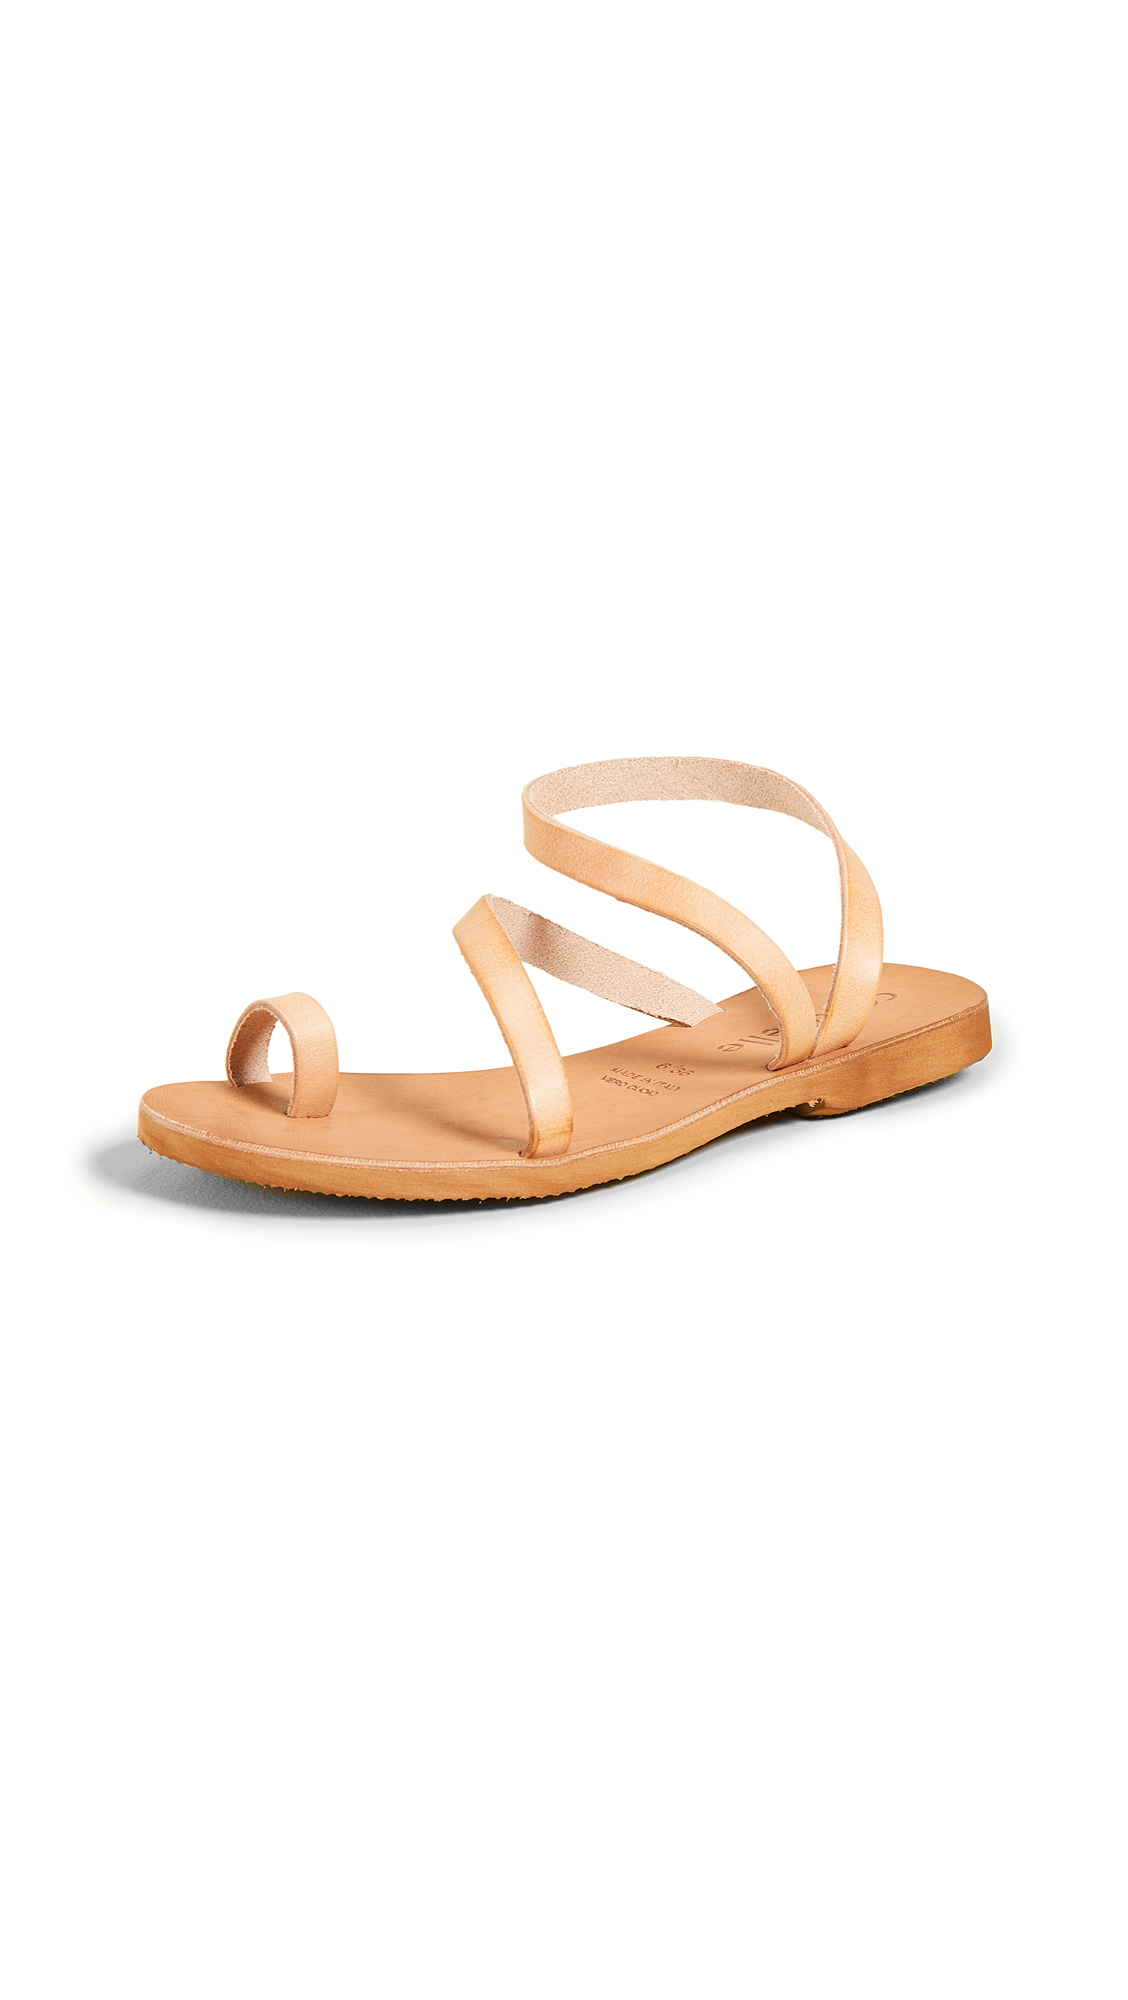 Cocobelle Crescent Strappy Sandals - Natural